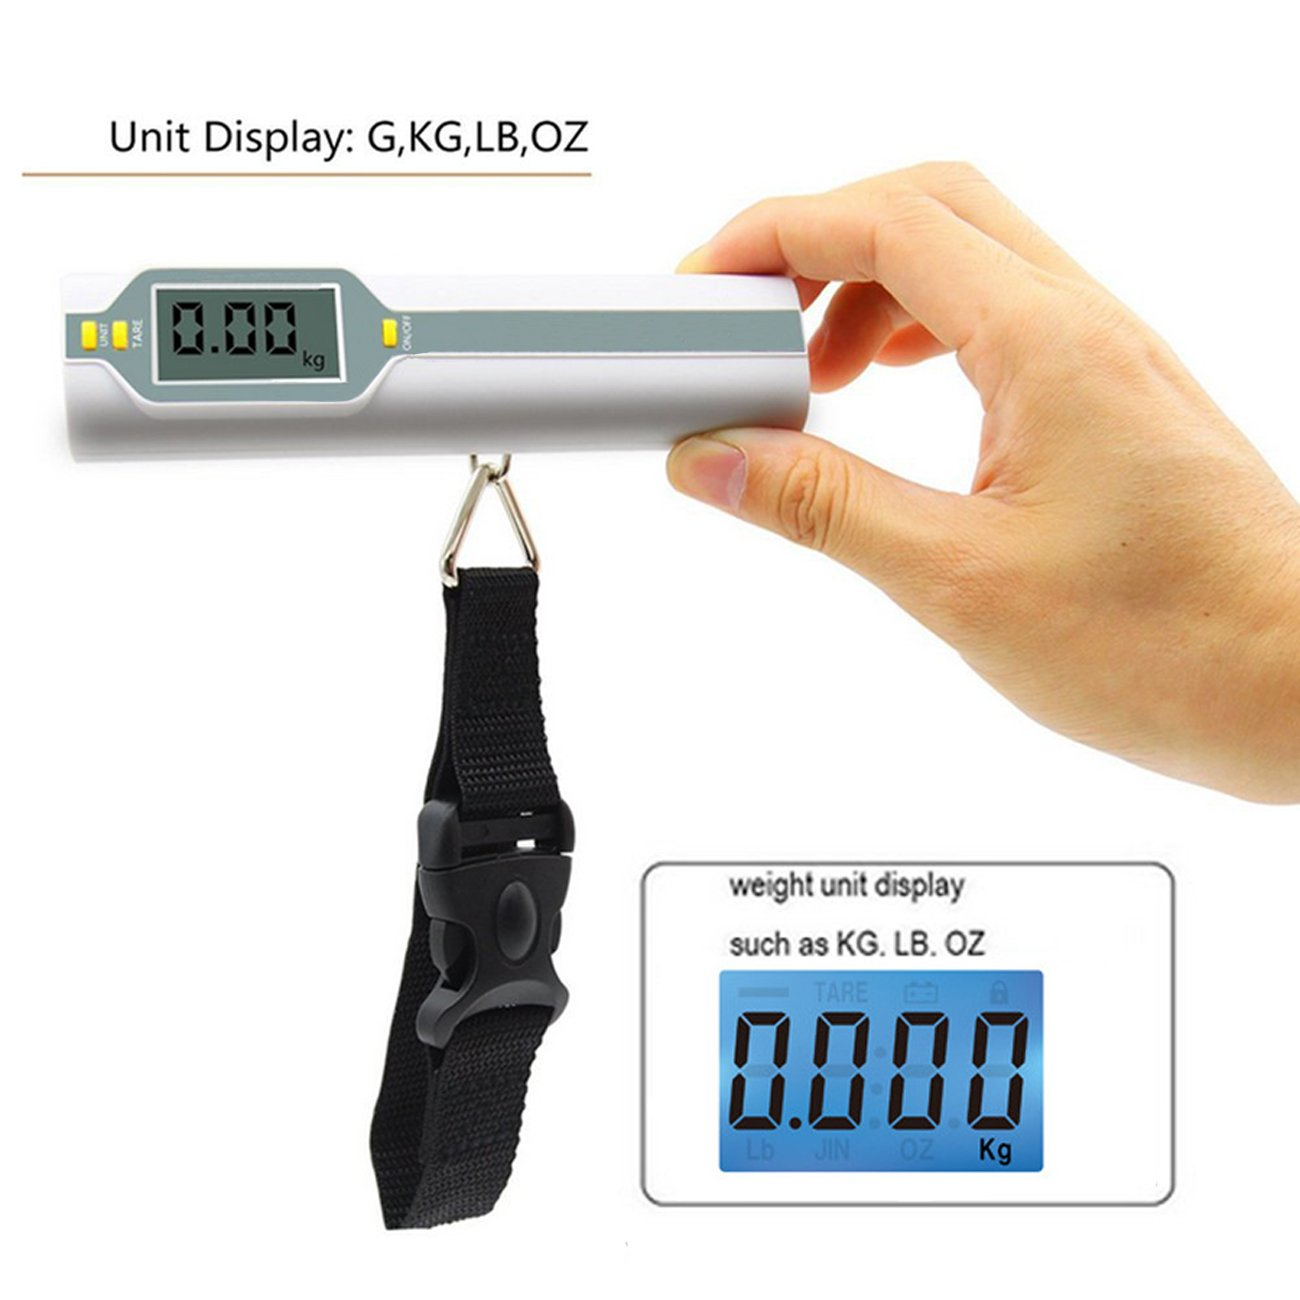 Luggage Scale, LCD Luggage Weight Scale Travel Luggage Scale Digital Luggage Scale, Lightweight Portable Electronic Digital Scale Suitcase Scales for Travel 110lb/50kg by KalorK